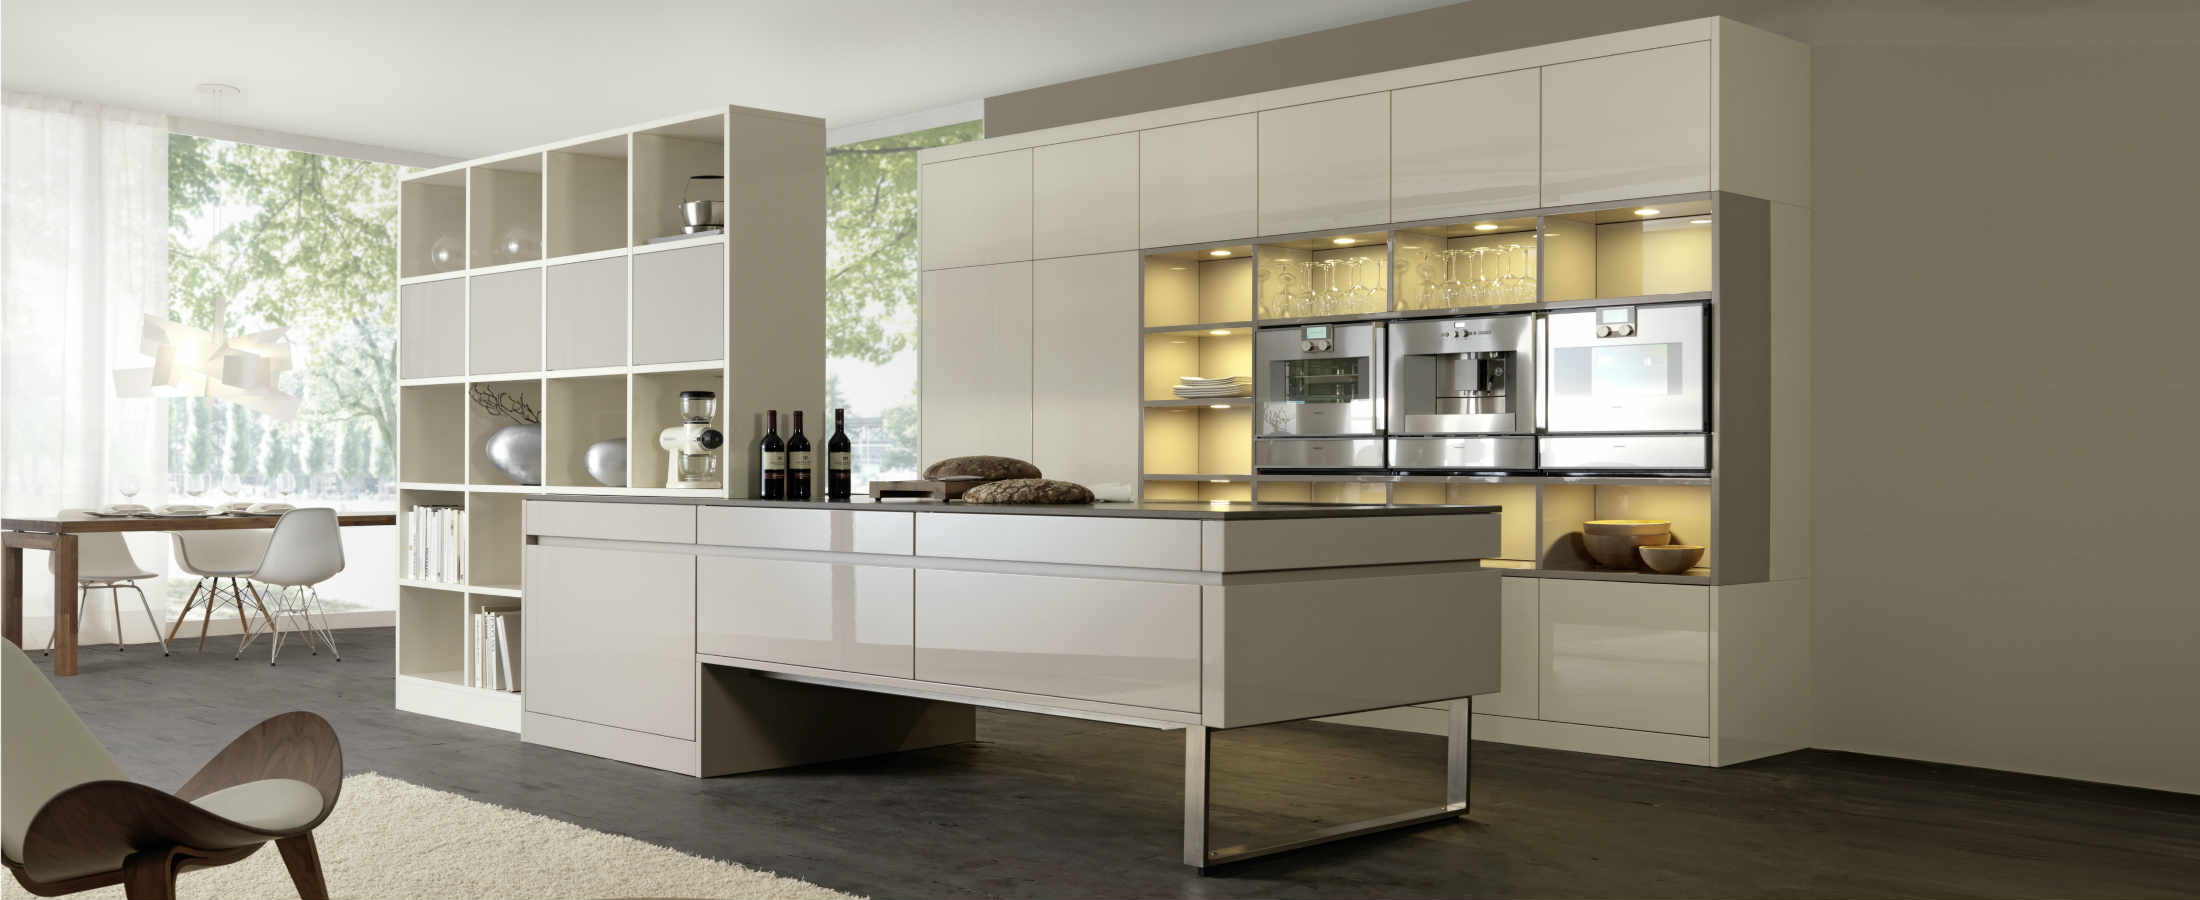 Holik group cocinas for Muebles echeverria